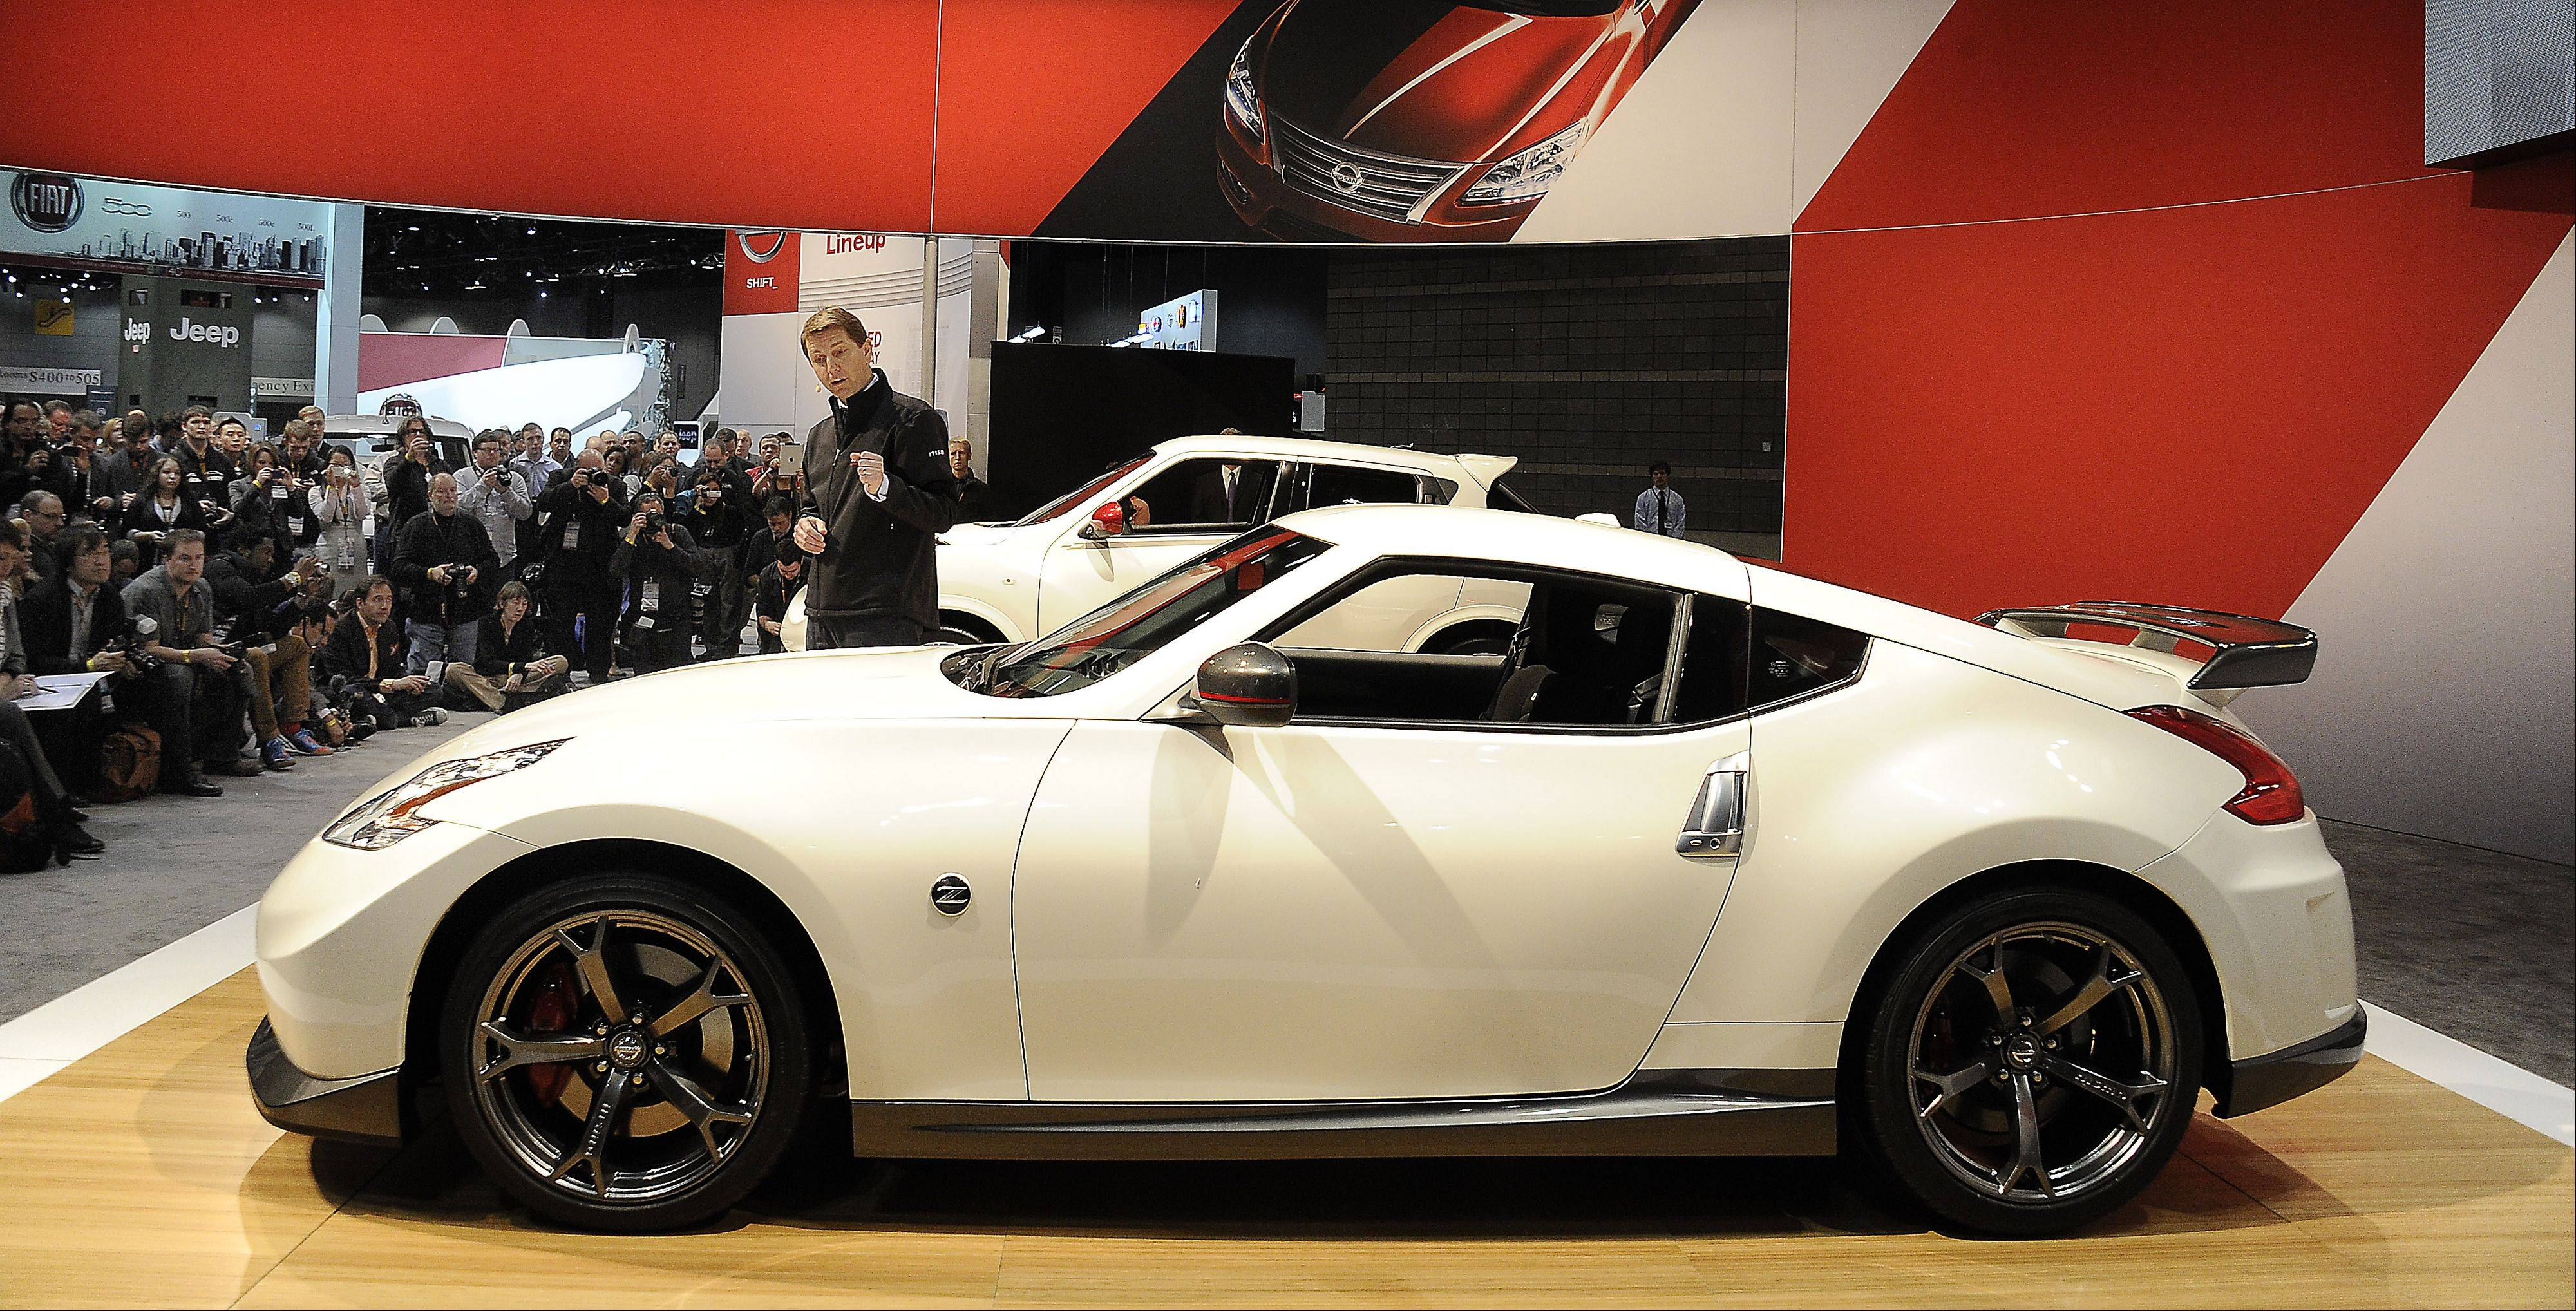 The Nissan 370Z, featuring 332 horsepower.